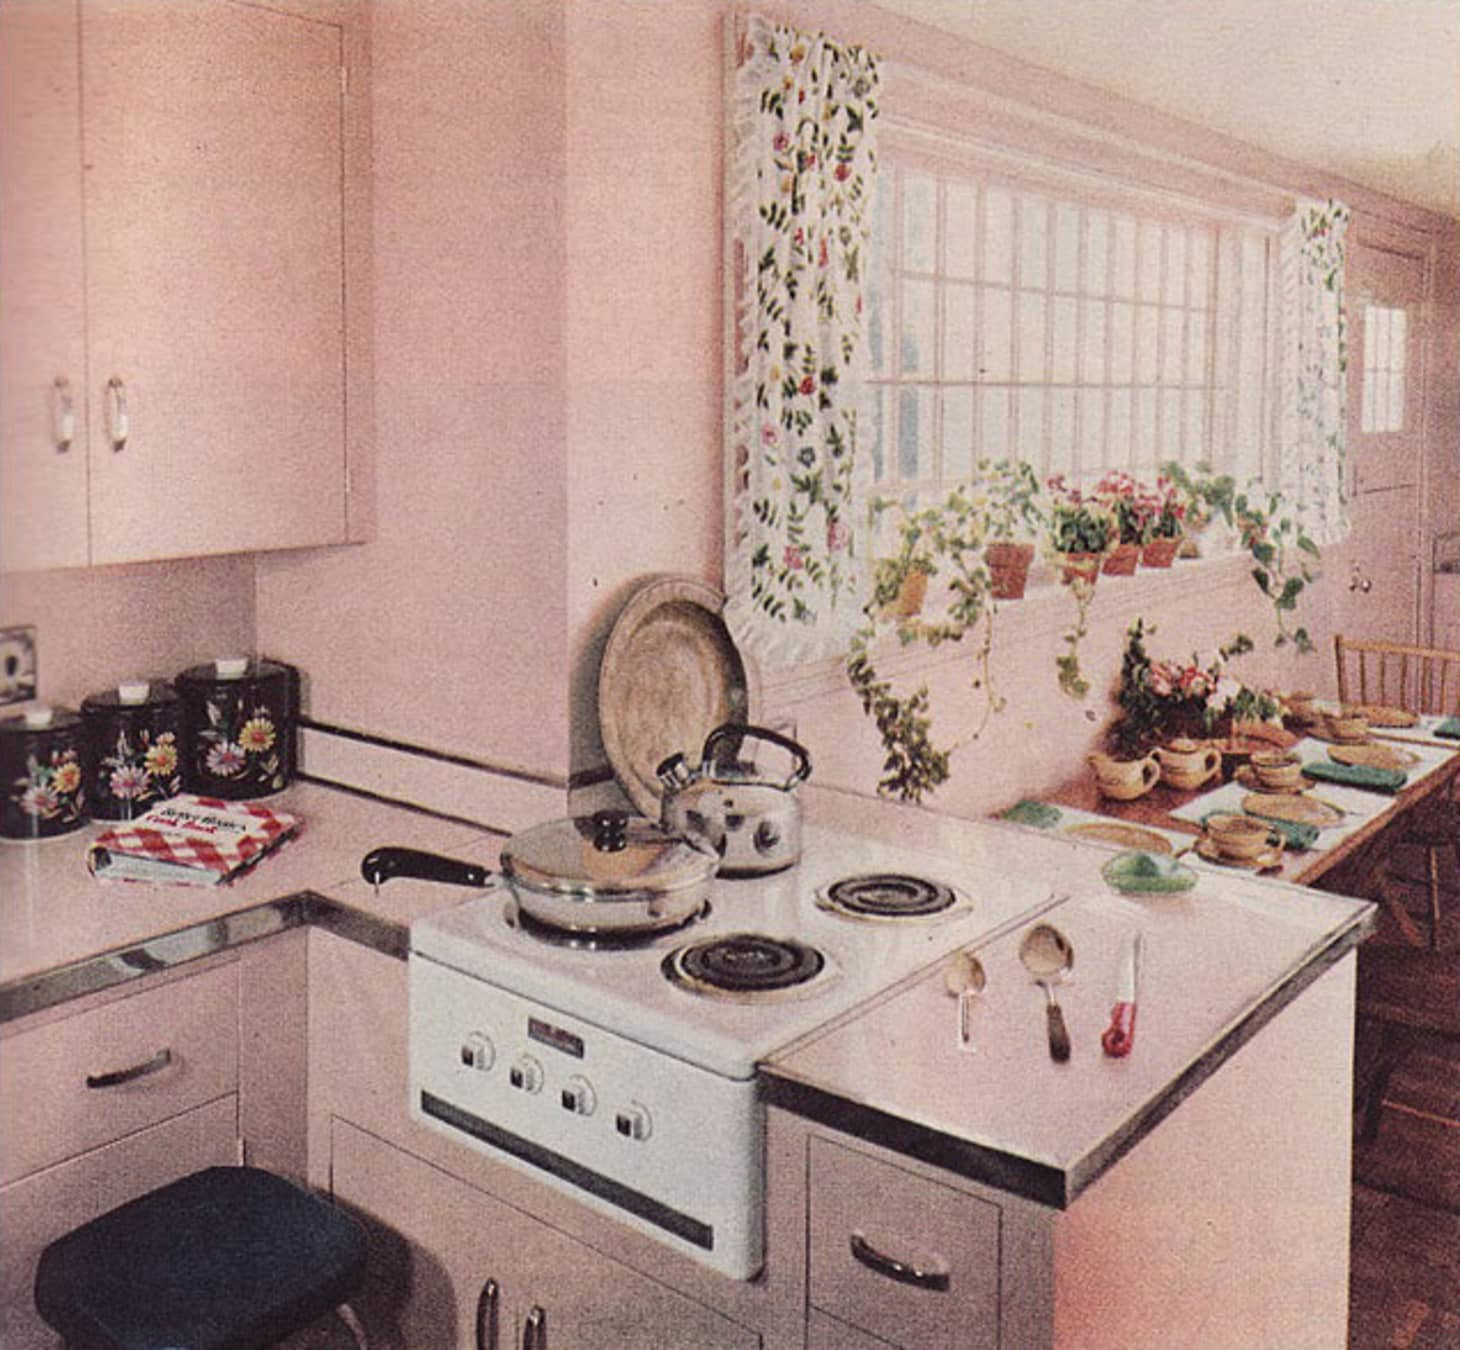 Terrific Brief History Of The Kitchen From The 1950S To 1960S Best Image Libraries Barepthycampuscom